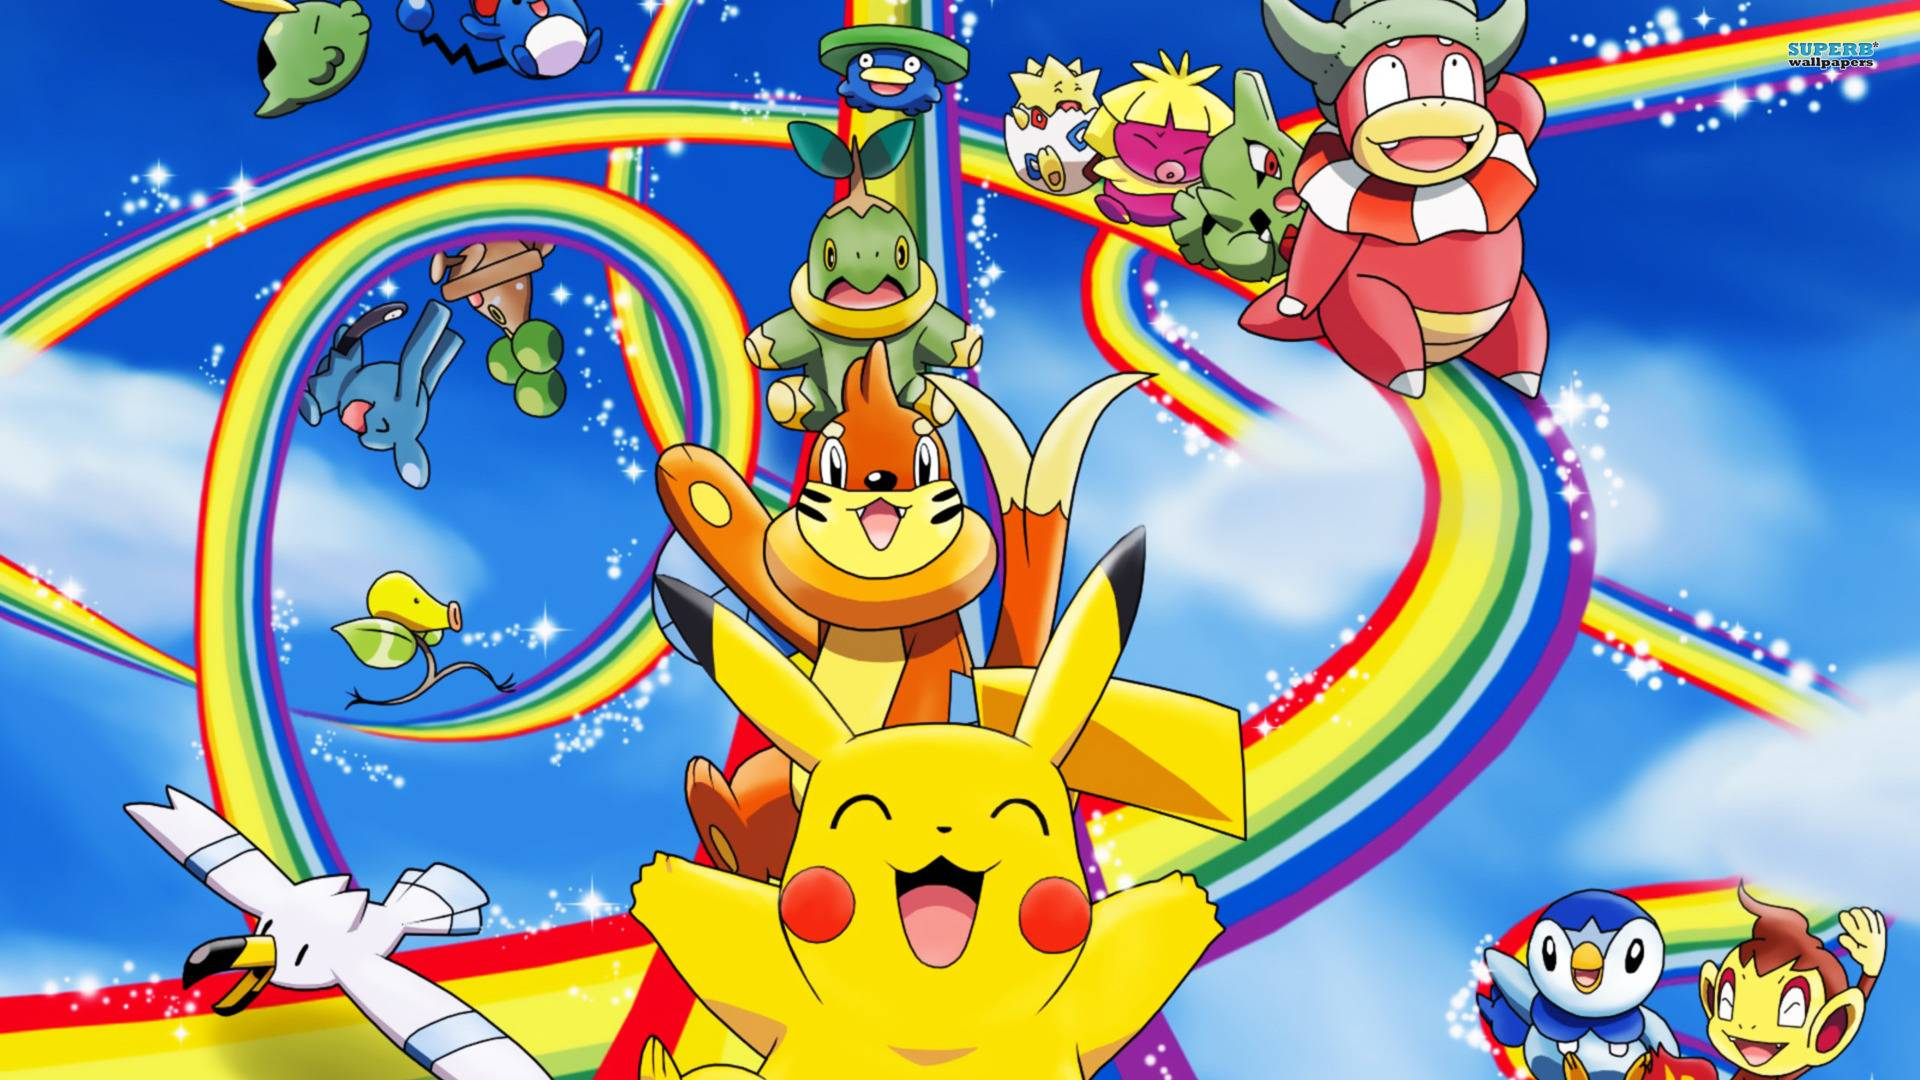 268468-pokemon-pokemon-wallpaper